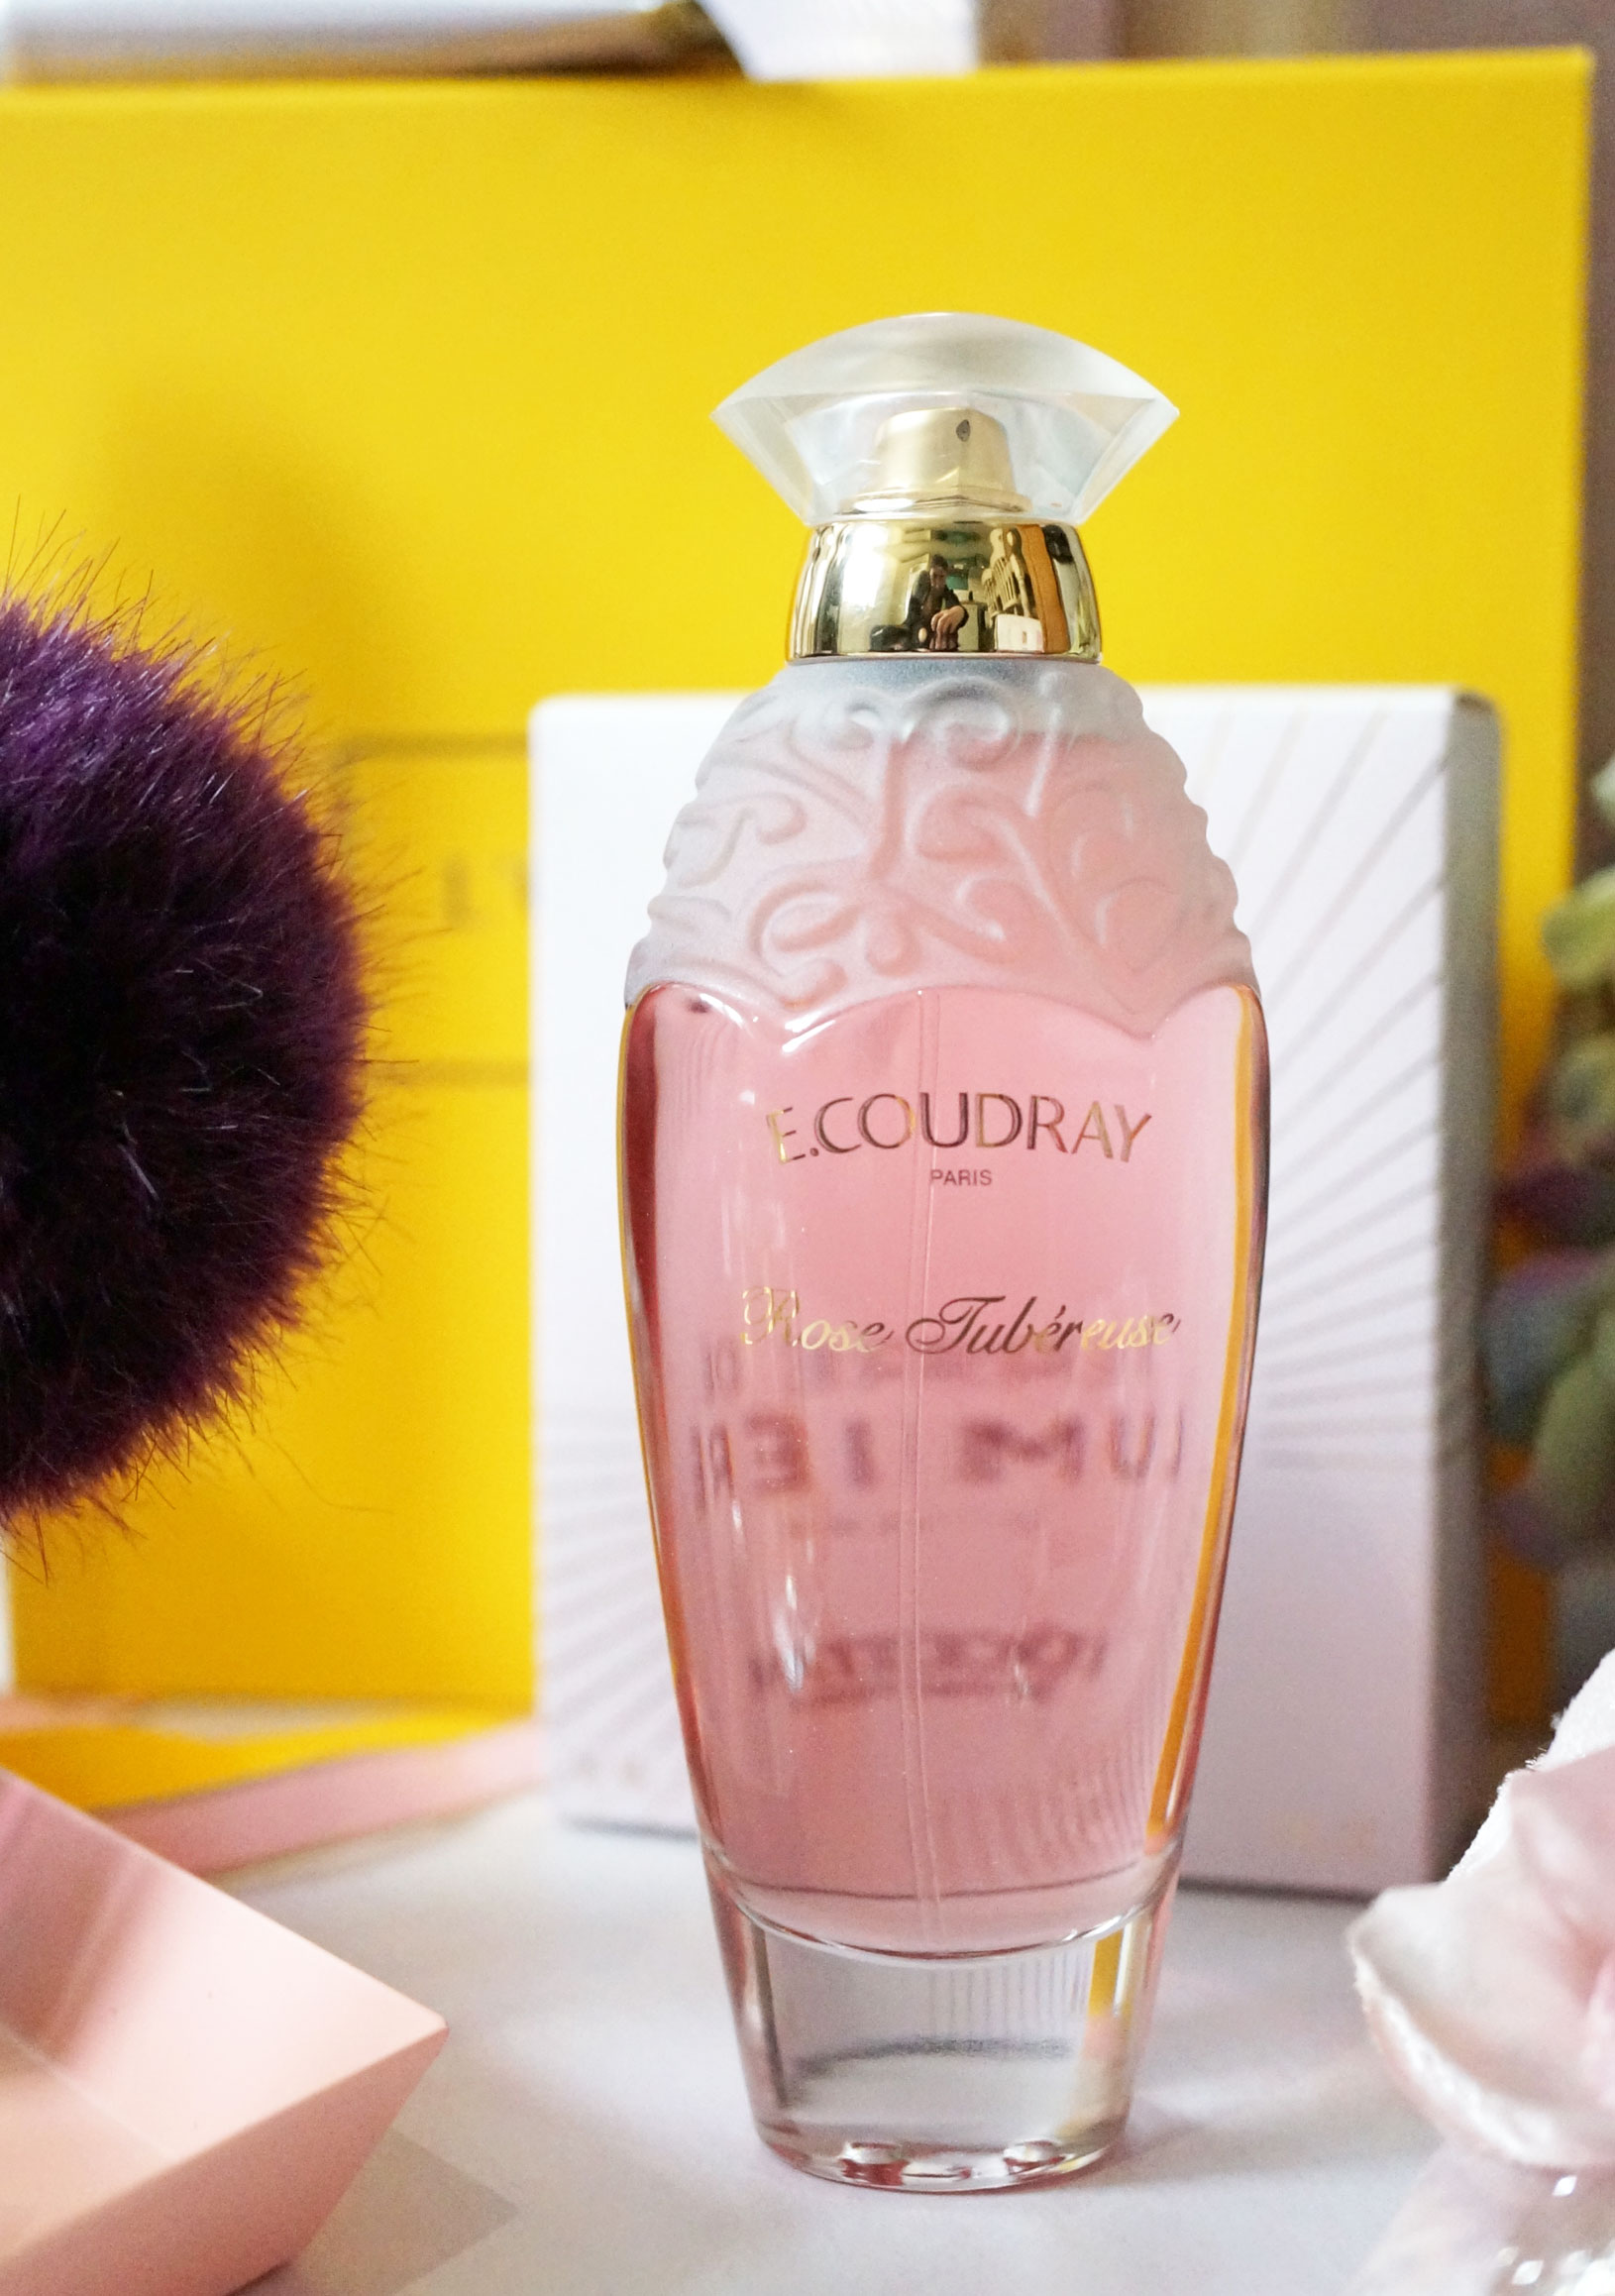 Caudalie Archives Thou Shalt Not Covet Evelyn Parfum Riject And I Also Have Ecoudray Rose Tubereuse Edt On Initial Spritz Thought This Scent Might Be A Bit Too Grown Up For Me But To Say